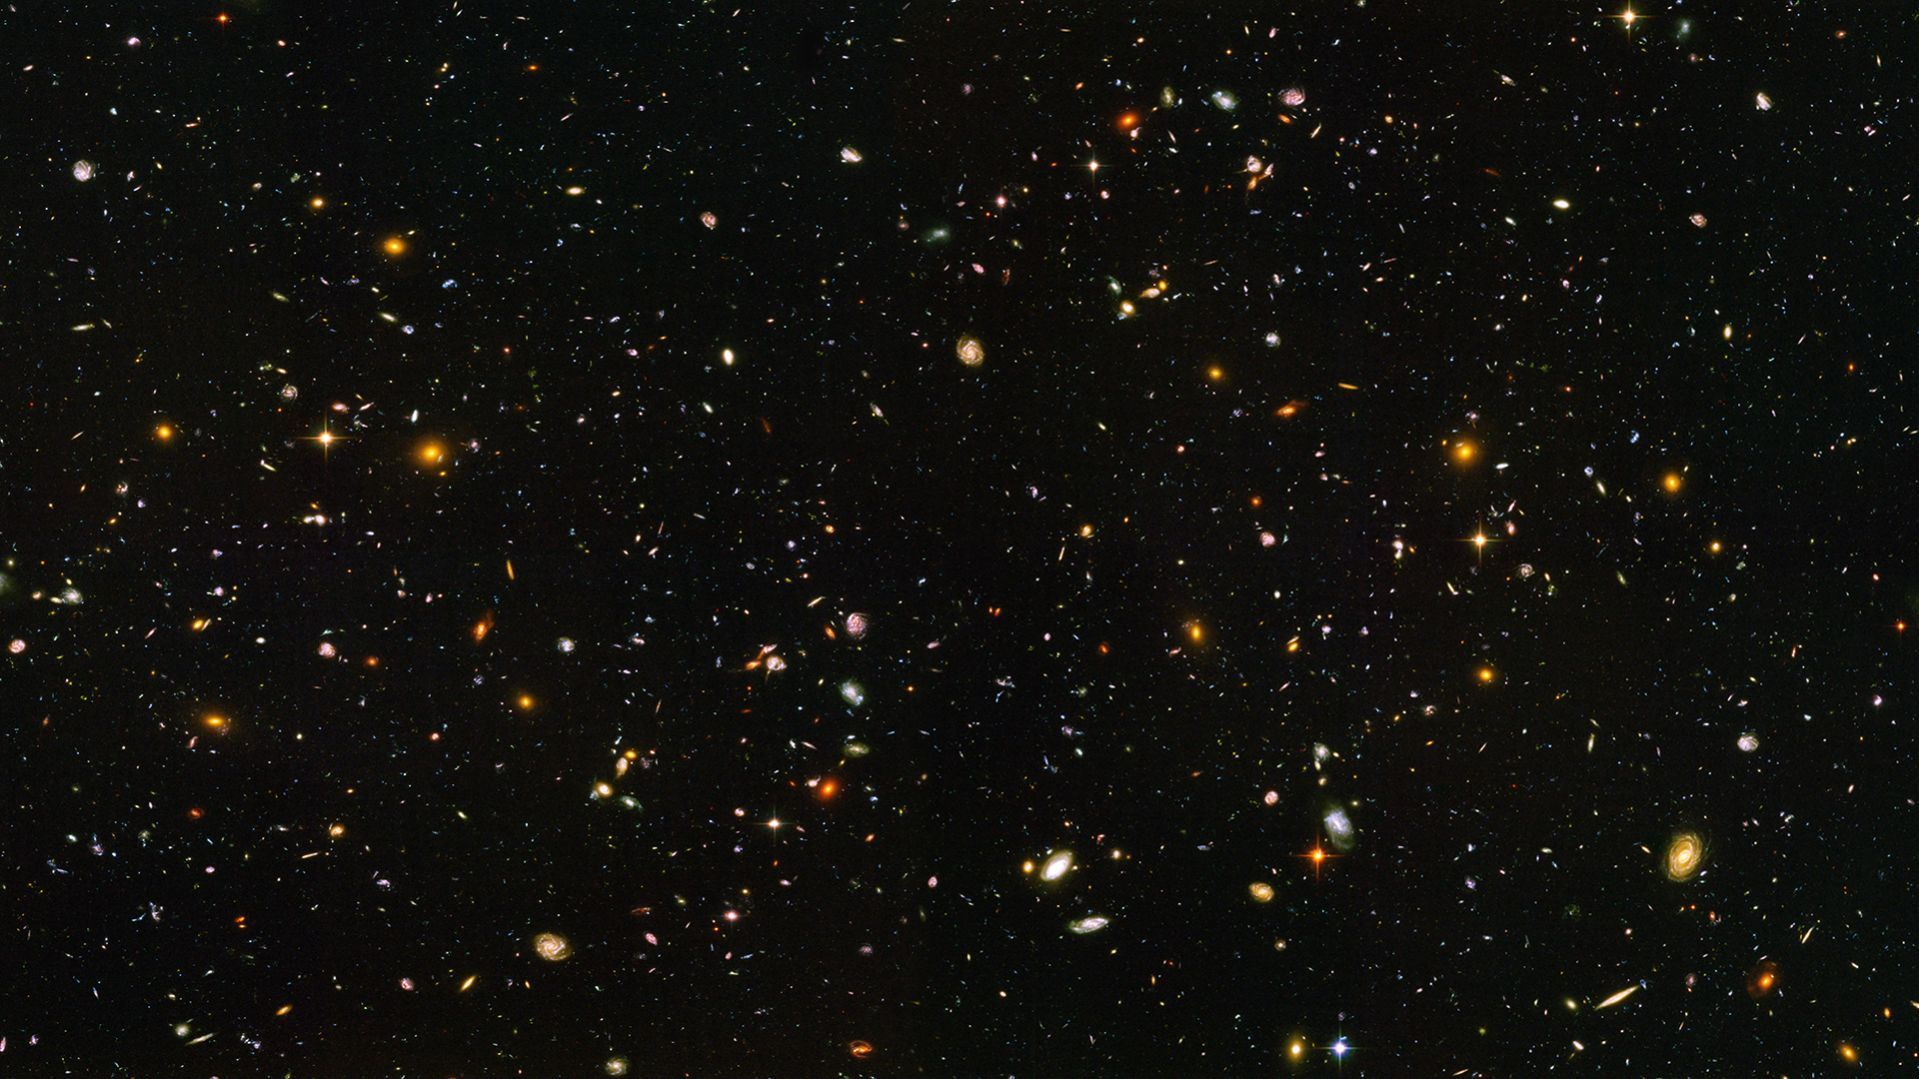 Hubble Ultra Deep Wallpaper 1920x1080